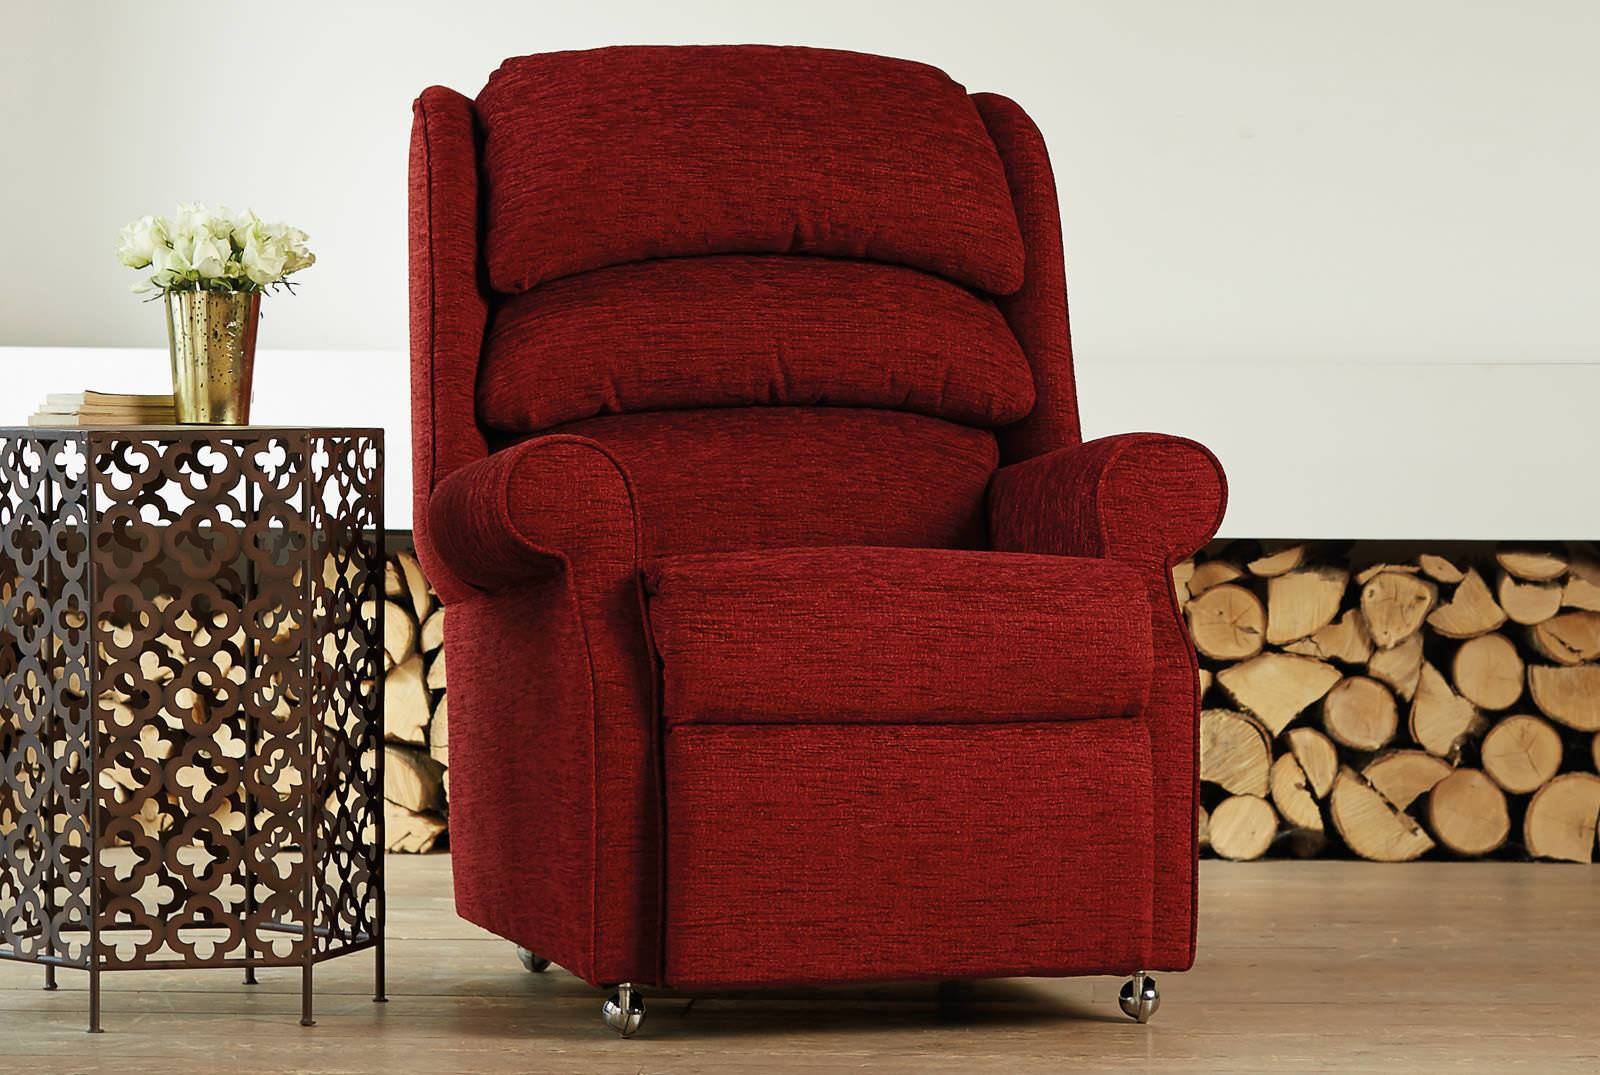 Waltham Comfort Chair in Boucle Wine